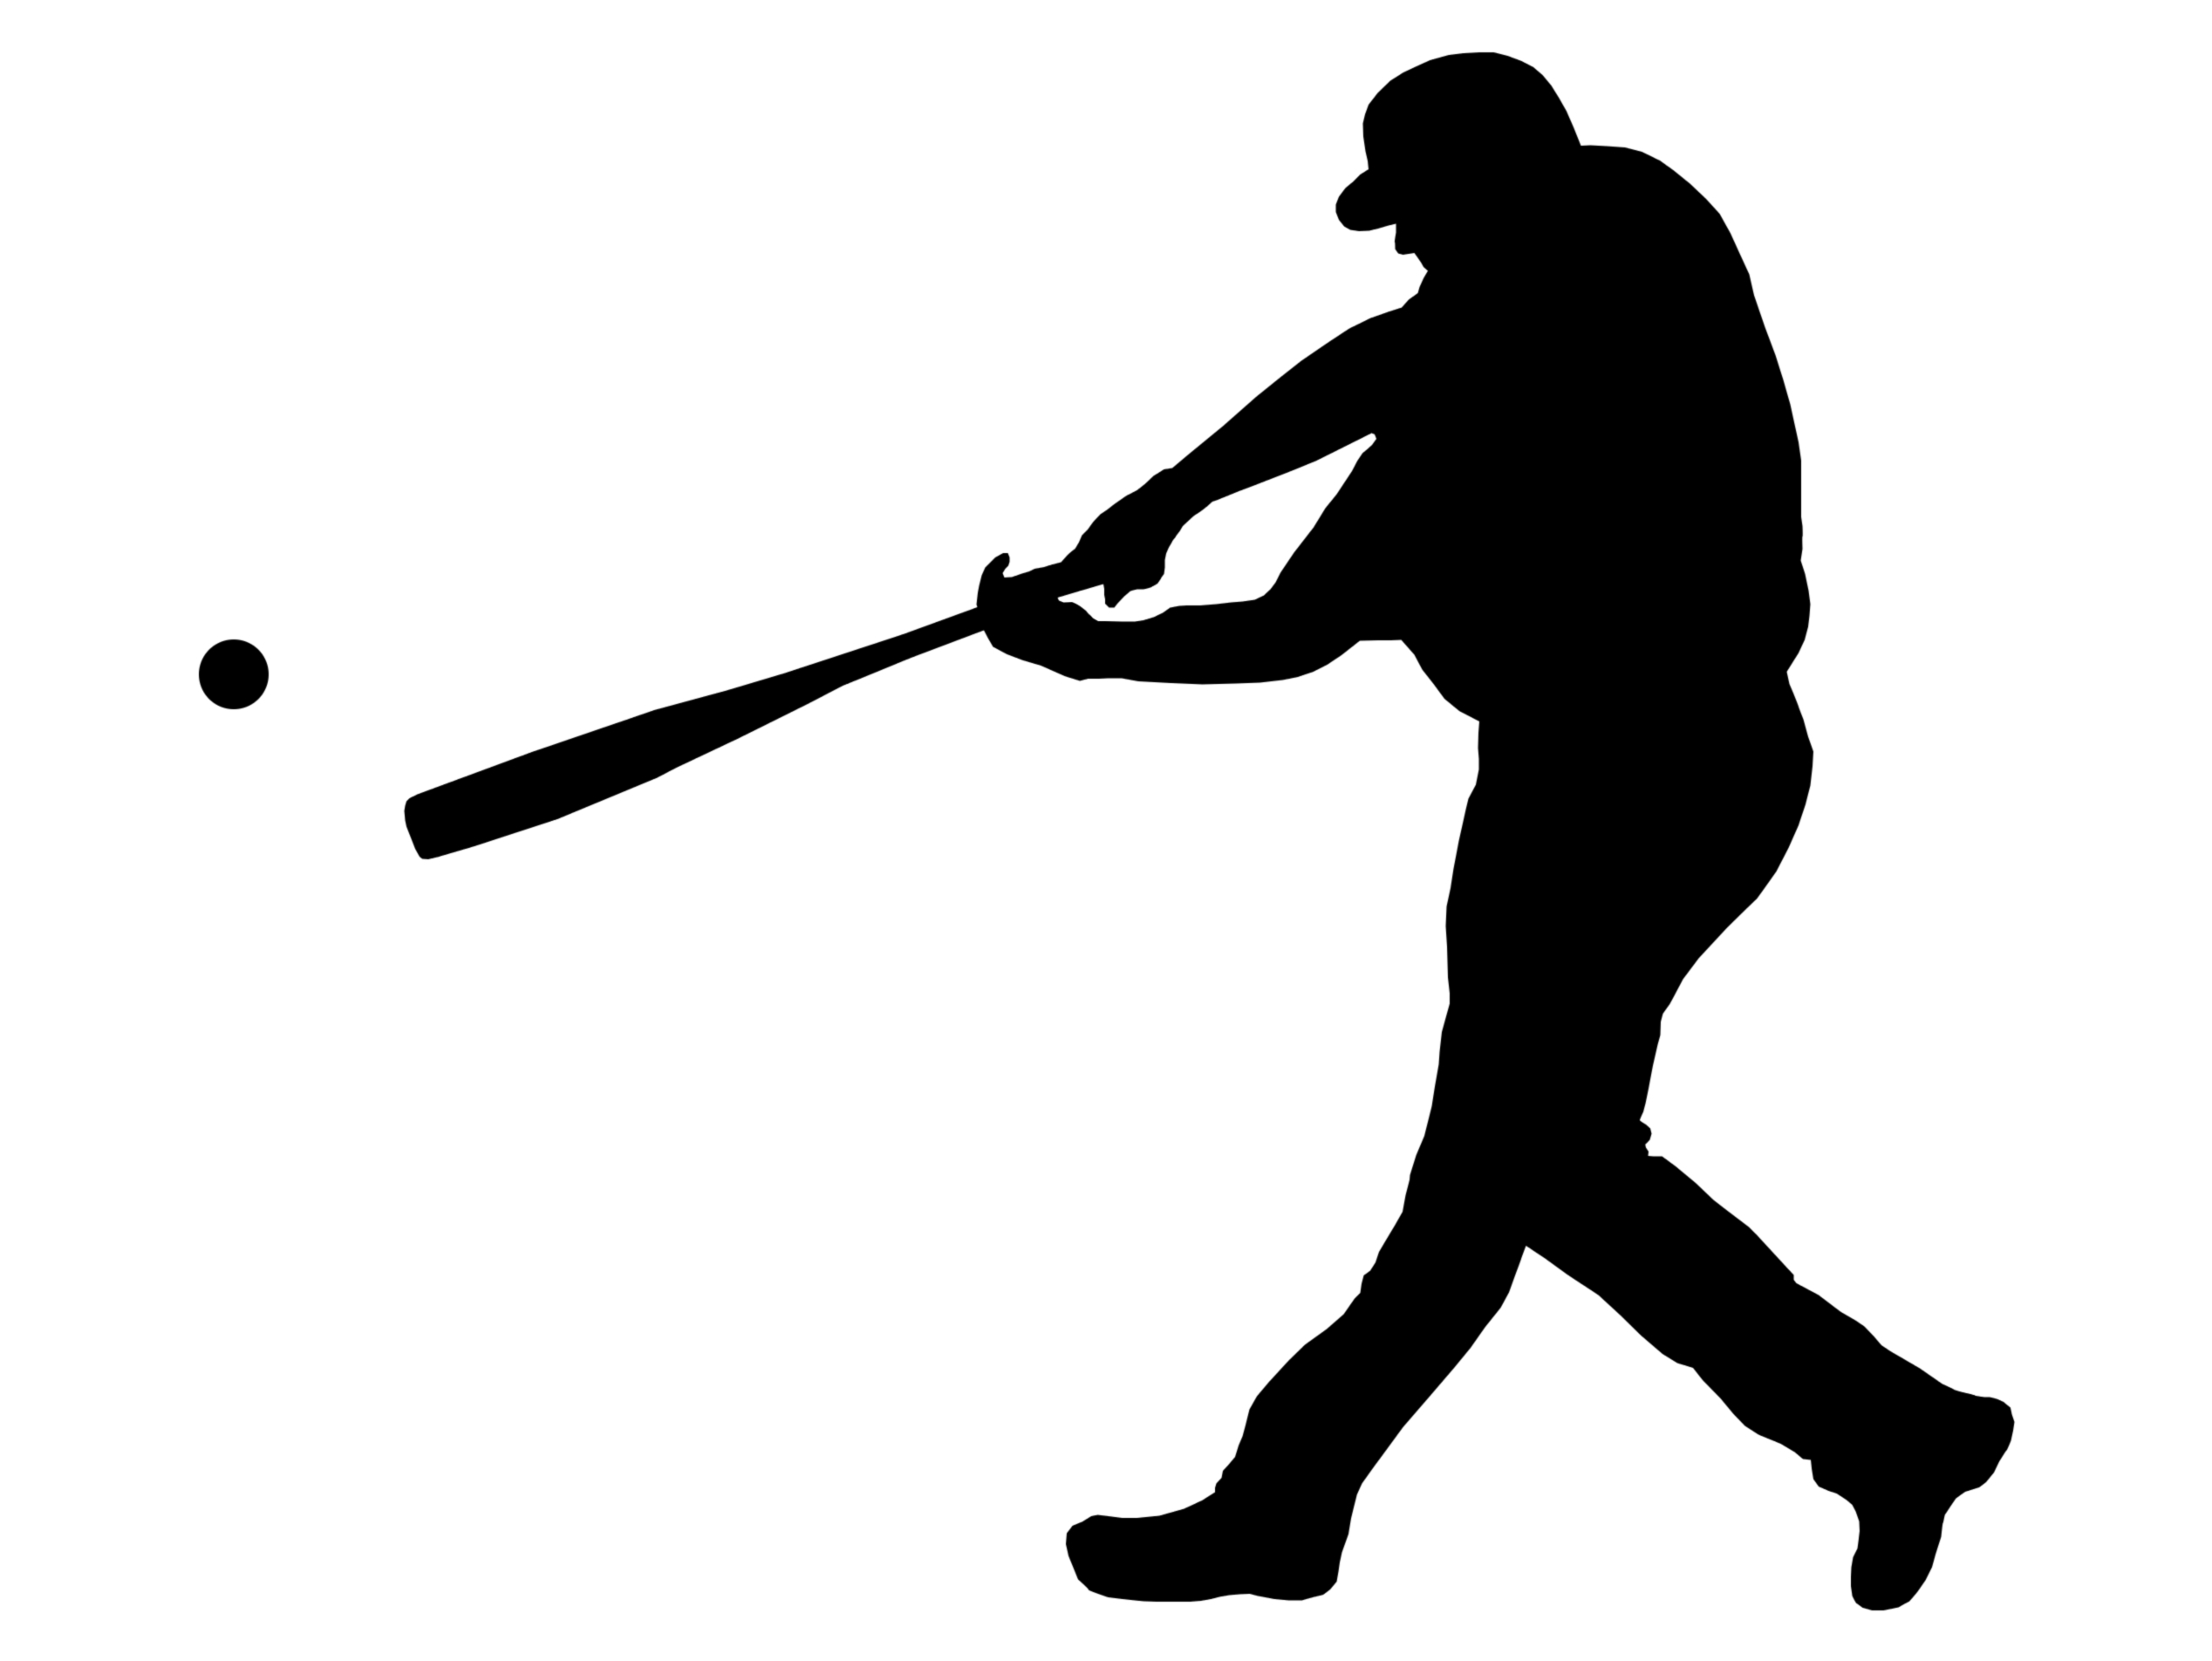 Boys clipart baseball. About us image result